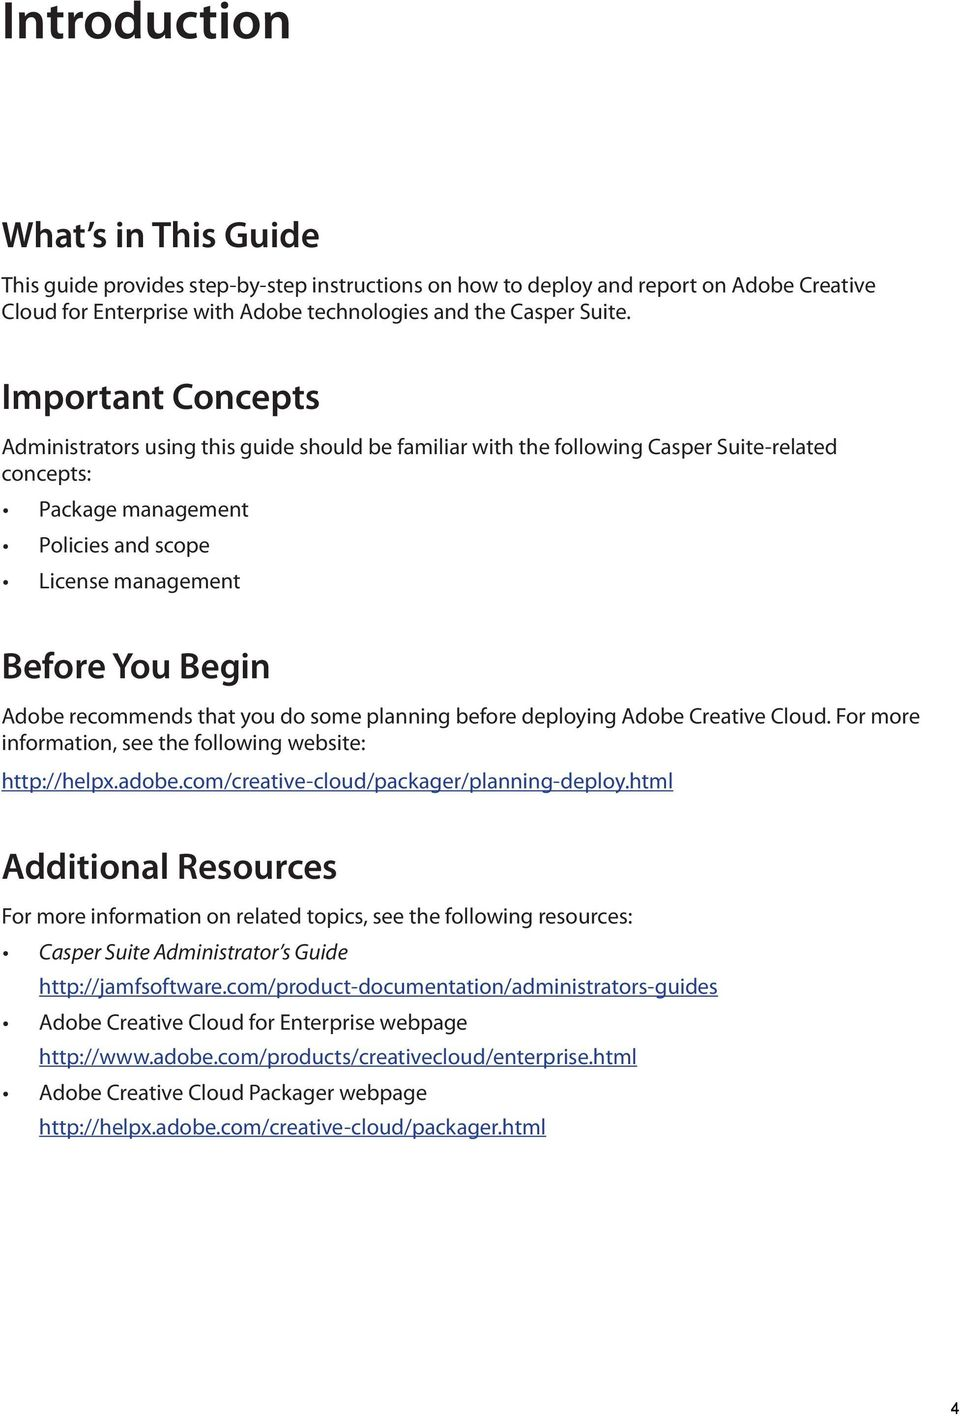 recommends that you do some planning before deploying Adobe Creative Cloud. For more information, see the following website: http://helpx.adobe.com/creative-cloud/packager/planning-deploy.